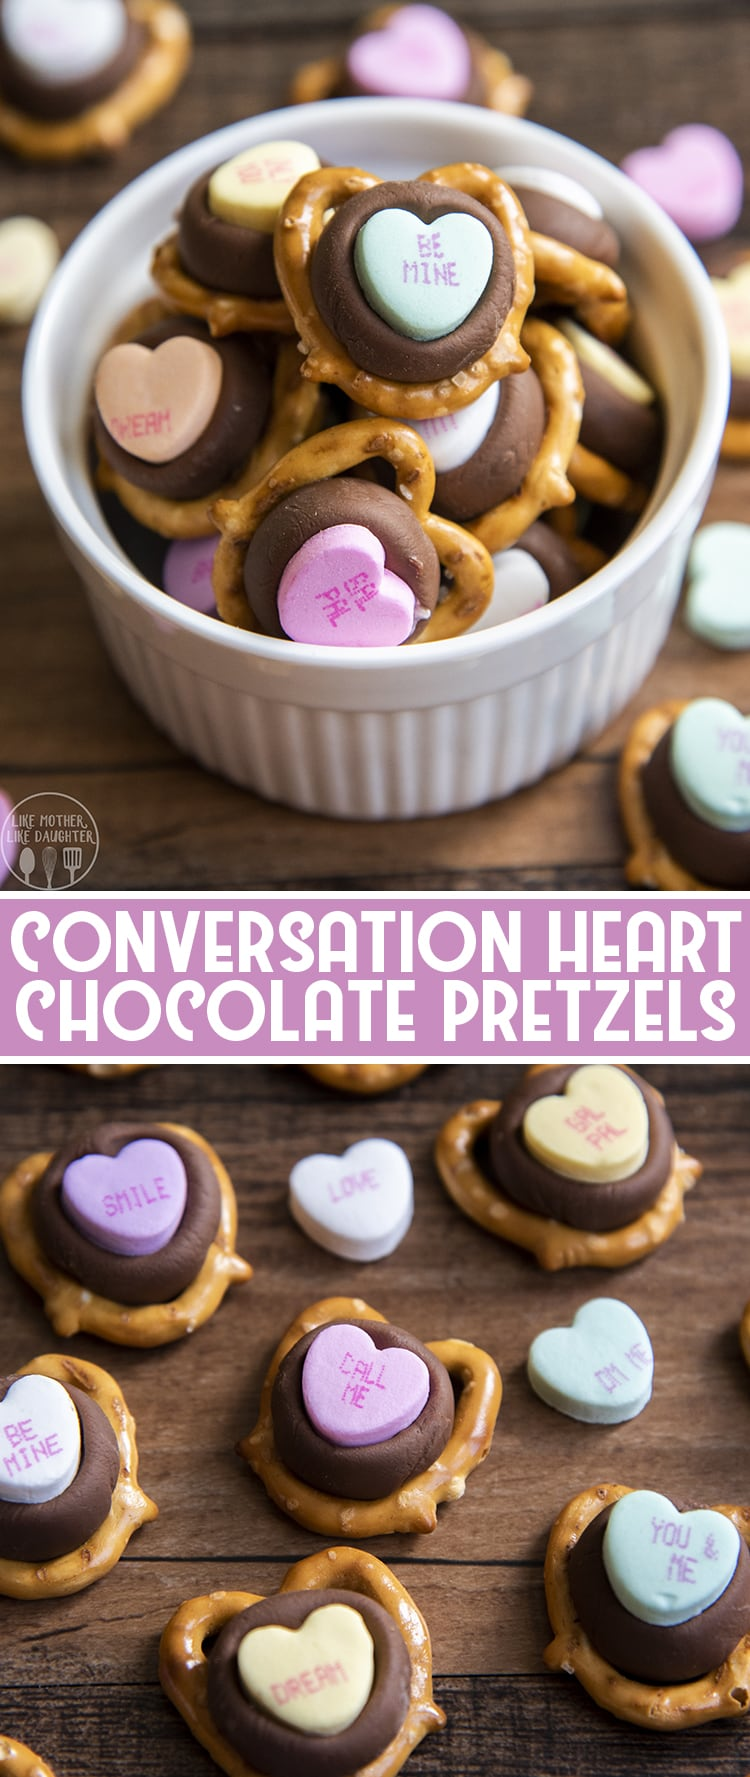 These conversation heart chocolate pretzels are such a great three ingredient Valentine's Day treat! They're a perfect adorable treat to show how much you love someone!